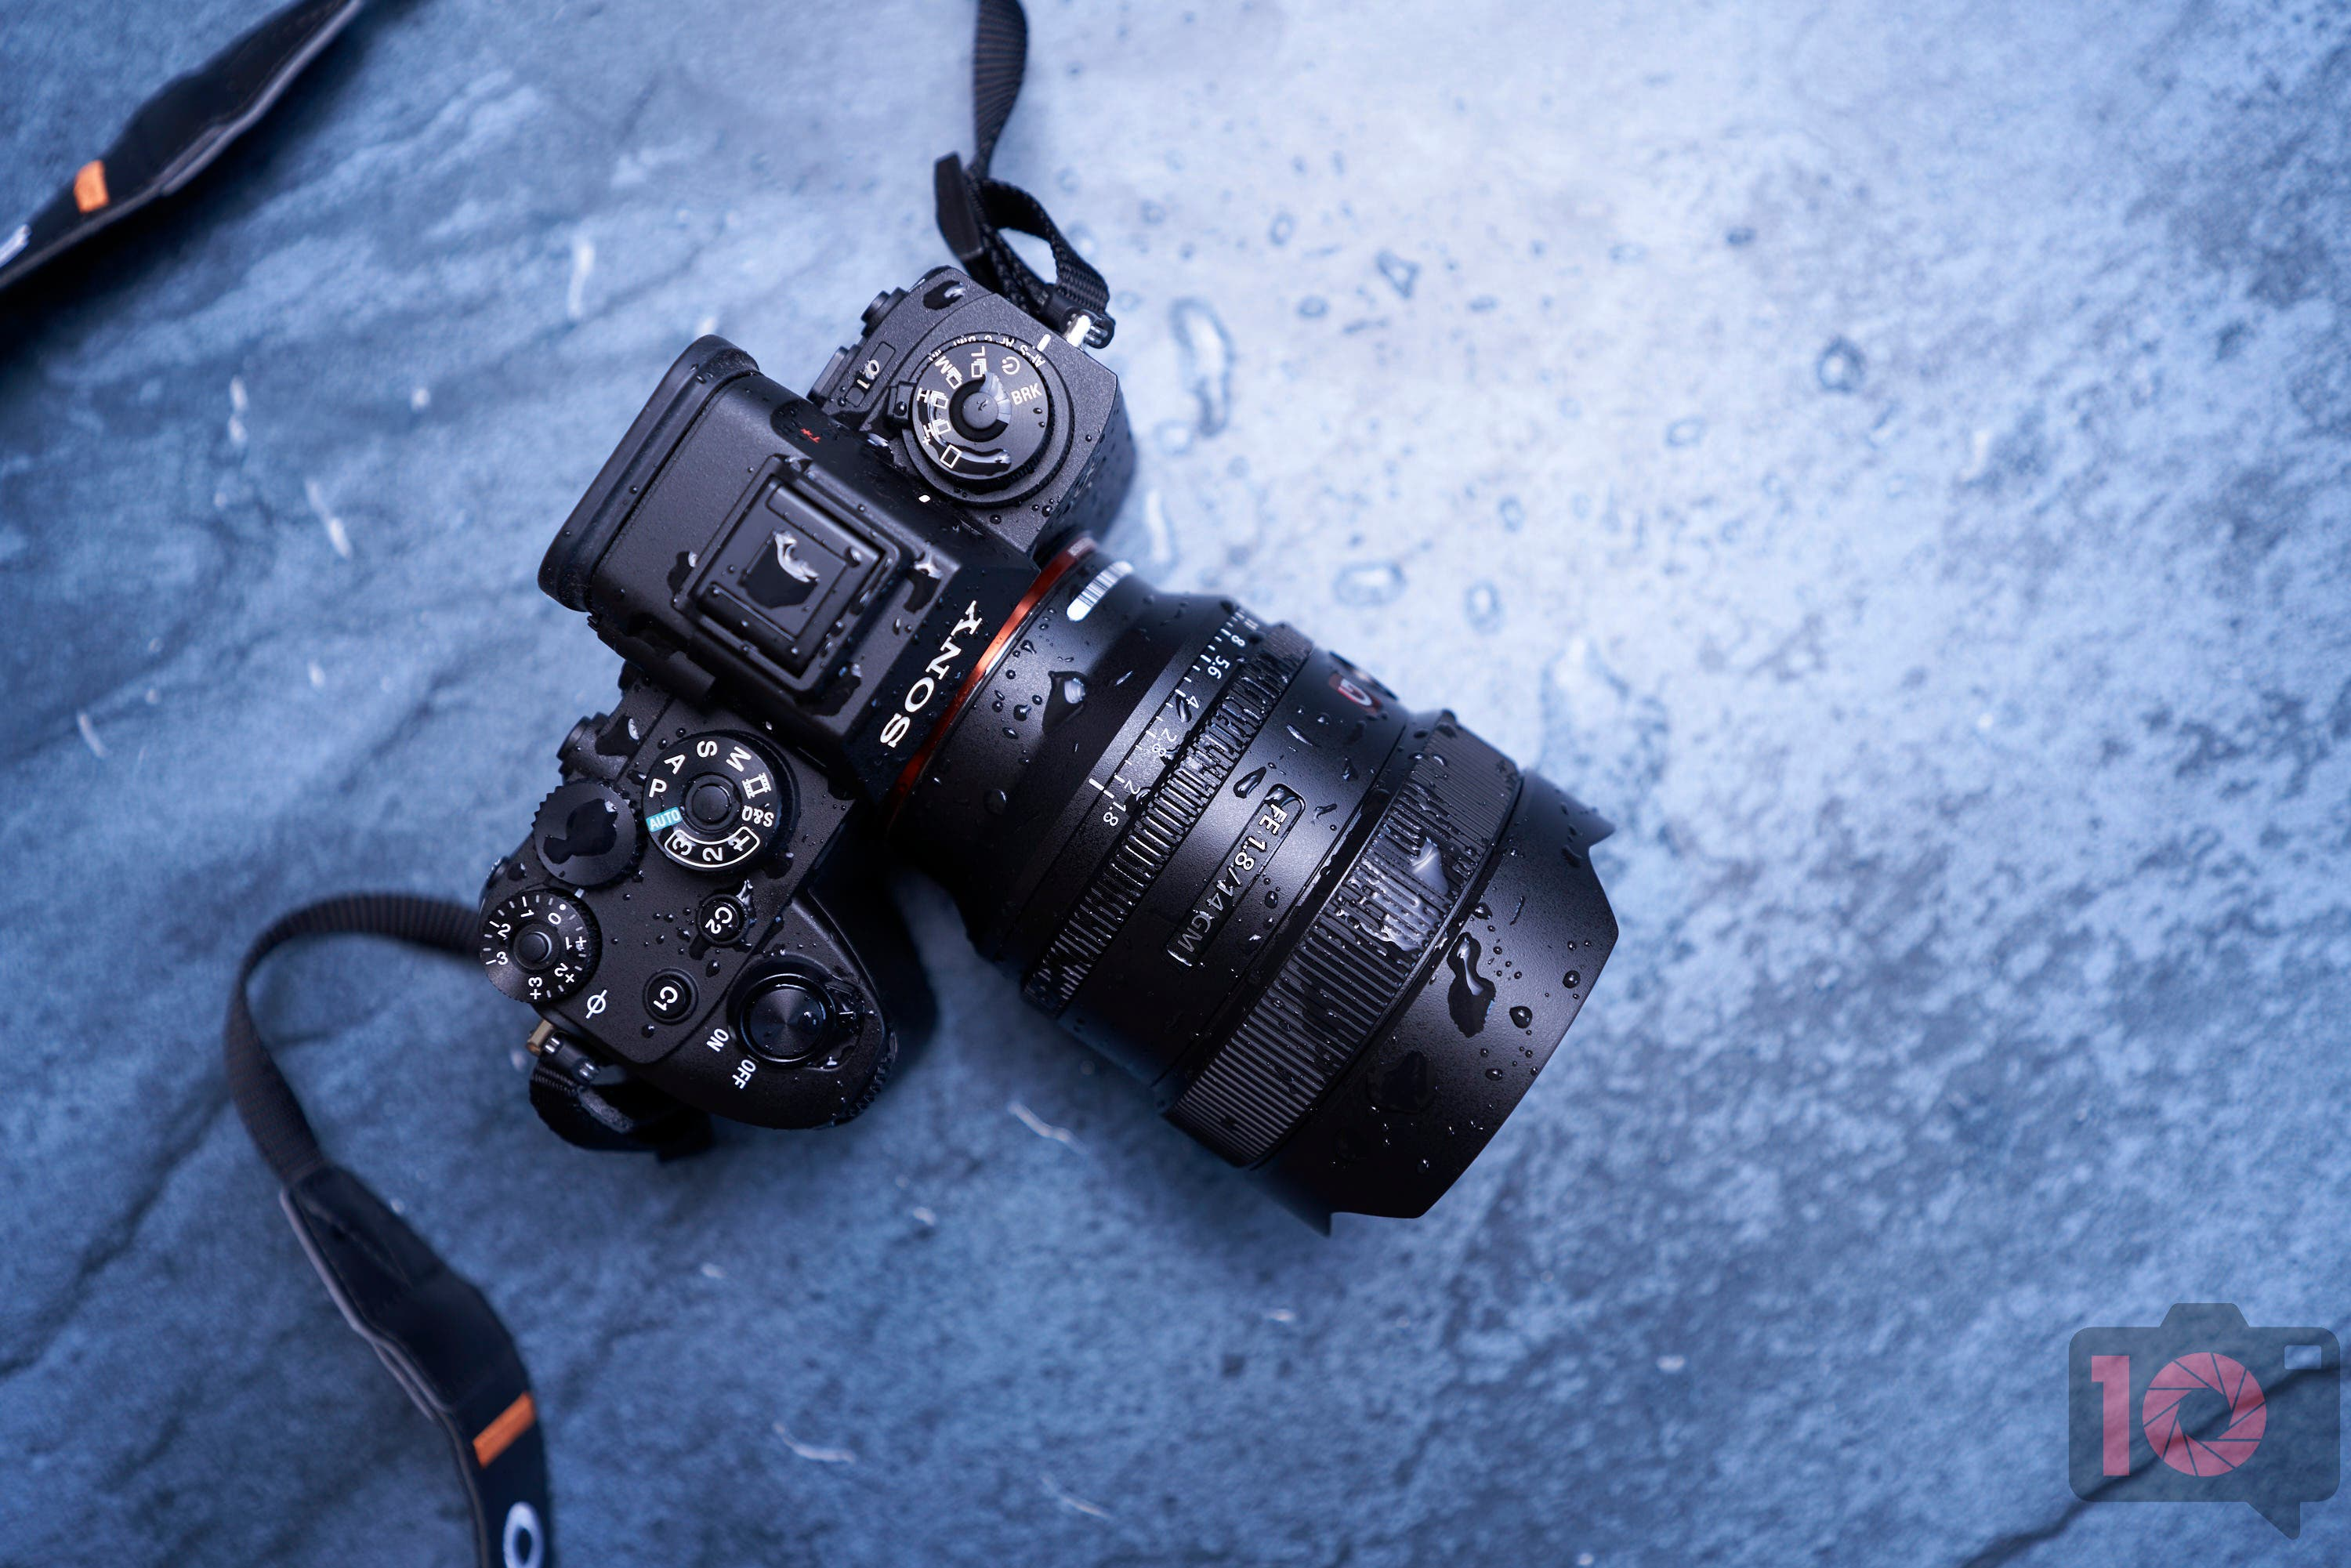 Small Lens, Big, Beautiful Colors. Sony 14mm F1.8 G Master Review